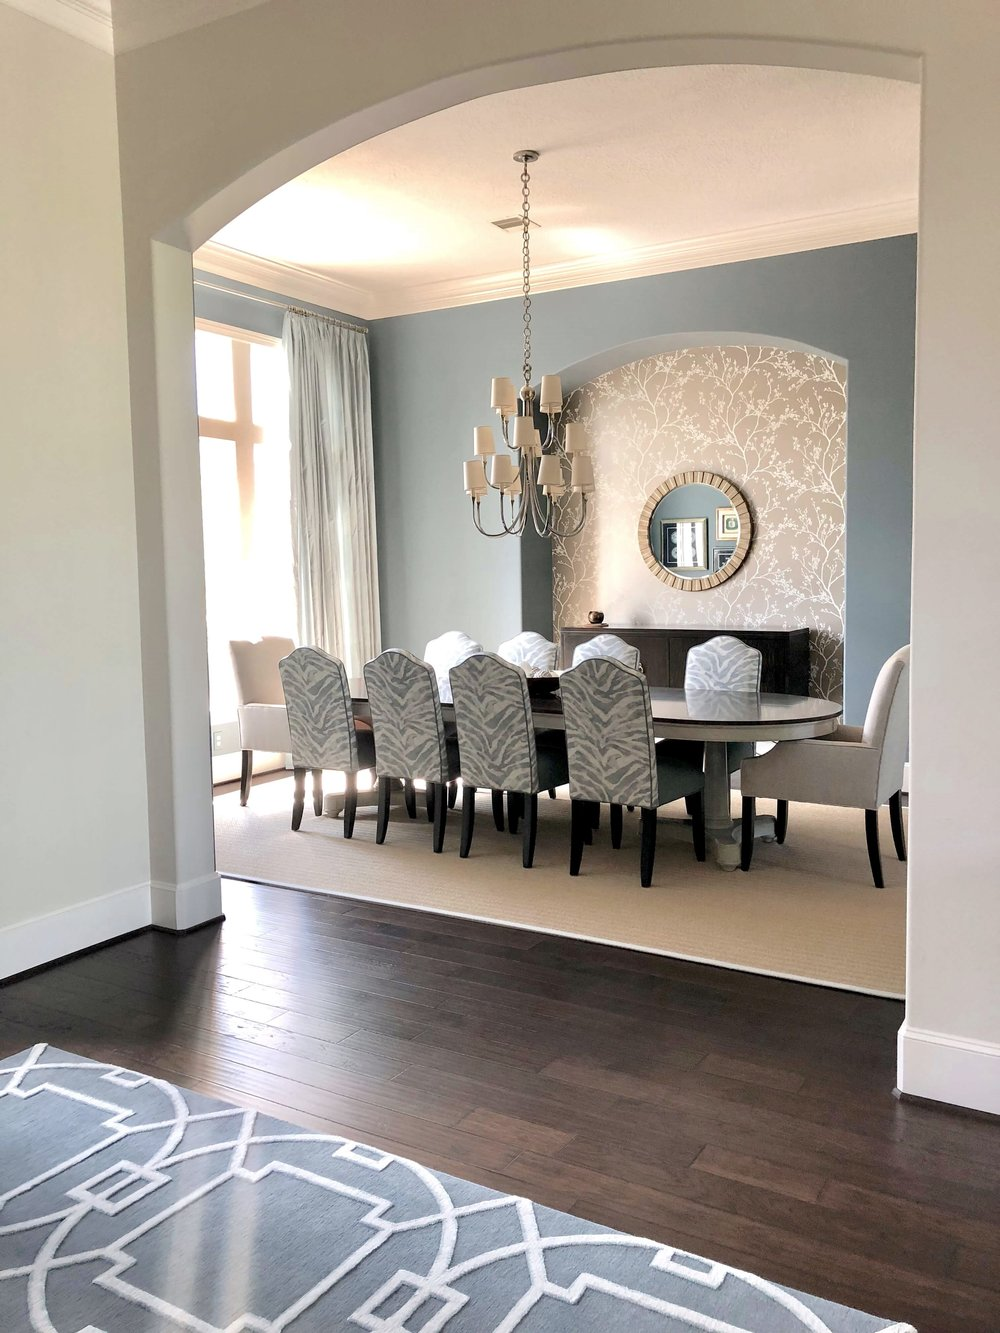 Whole House Project - Dining Room, Carla Aston - Designer #bluediningroom #diningroomideas